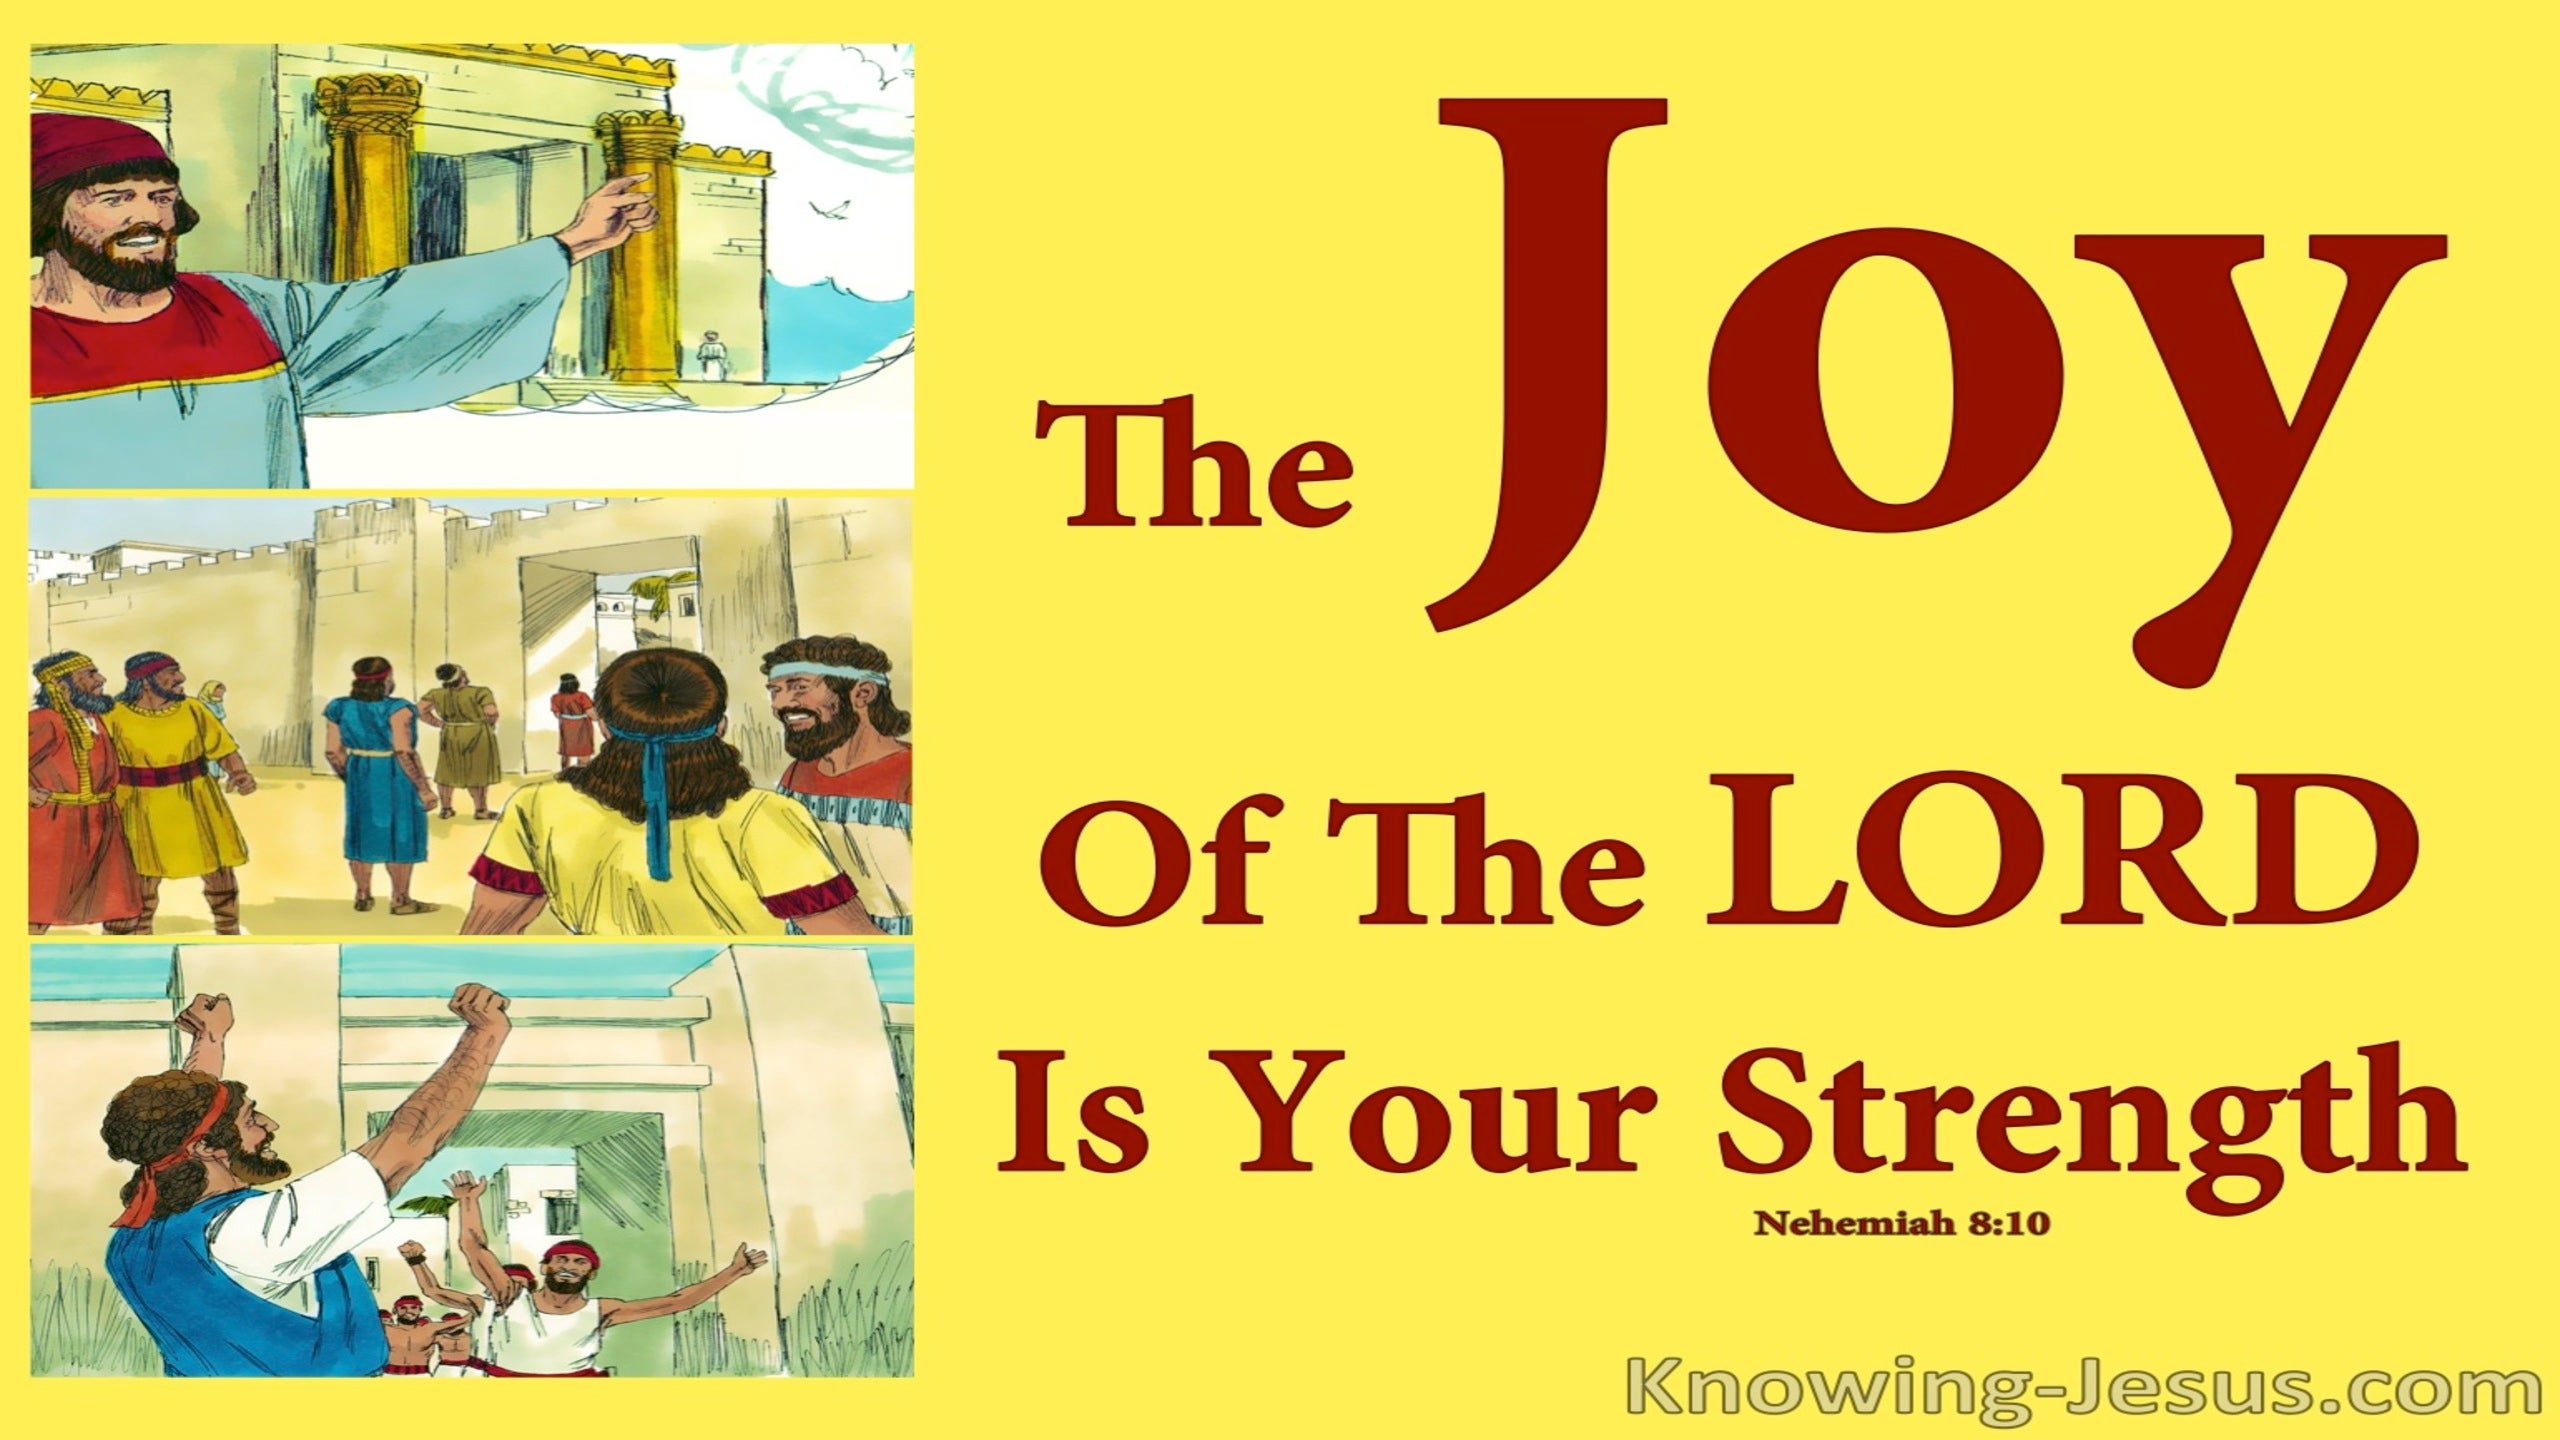 Nehemiah 8:10 The Joy Of The Lord Is Your Strength (yellow)